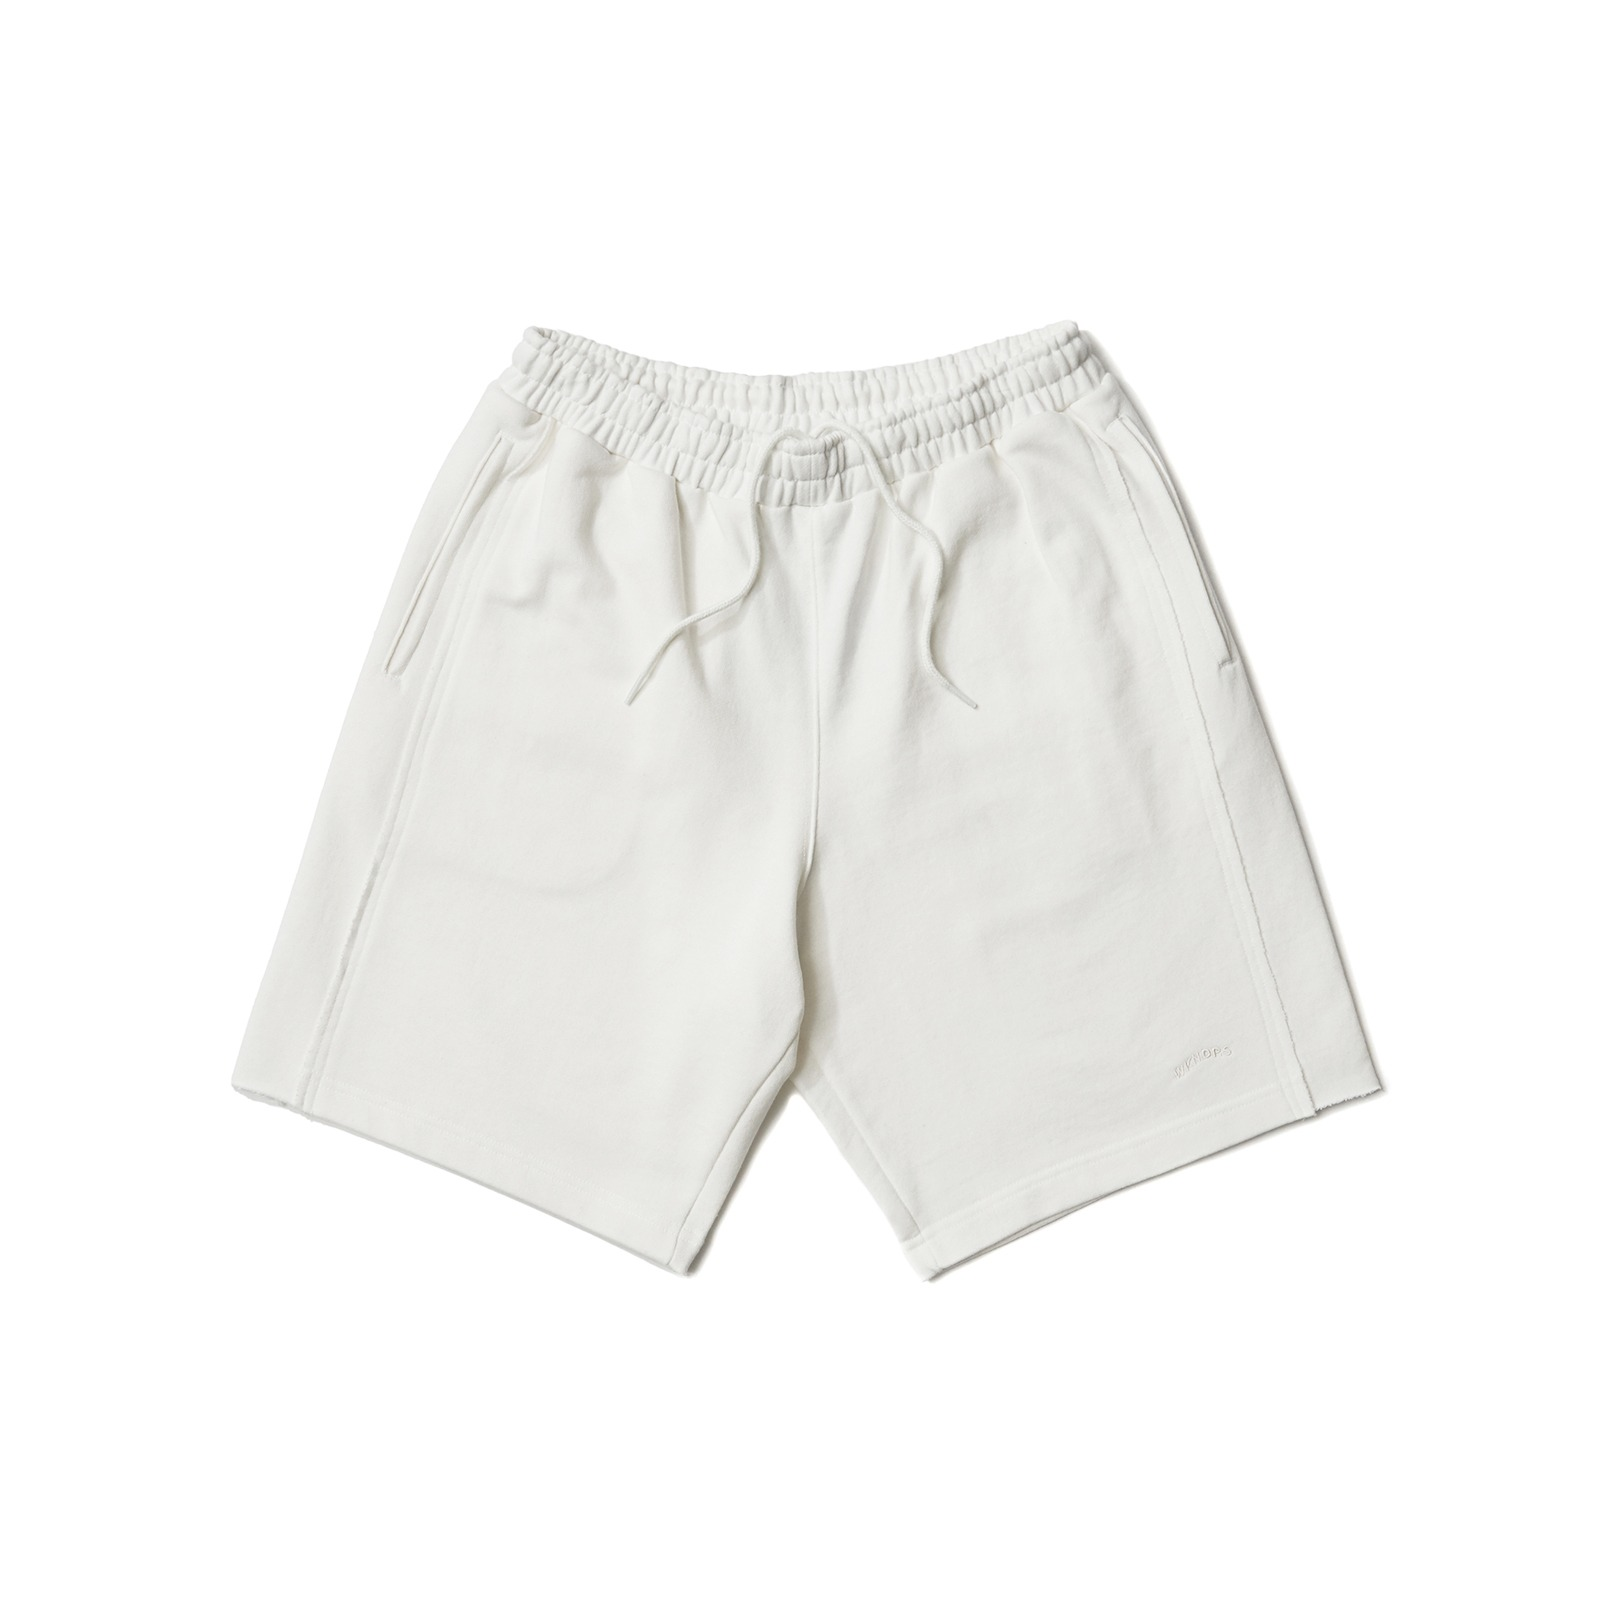 RAW EDGE SWEATSHORT (WHITE)